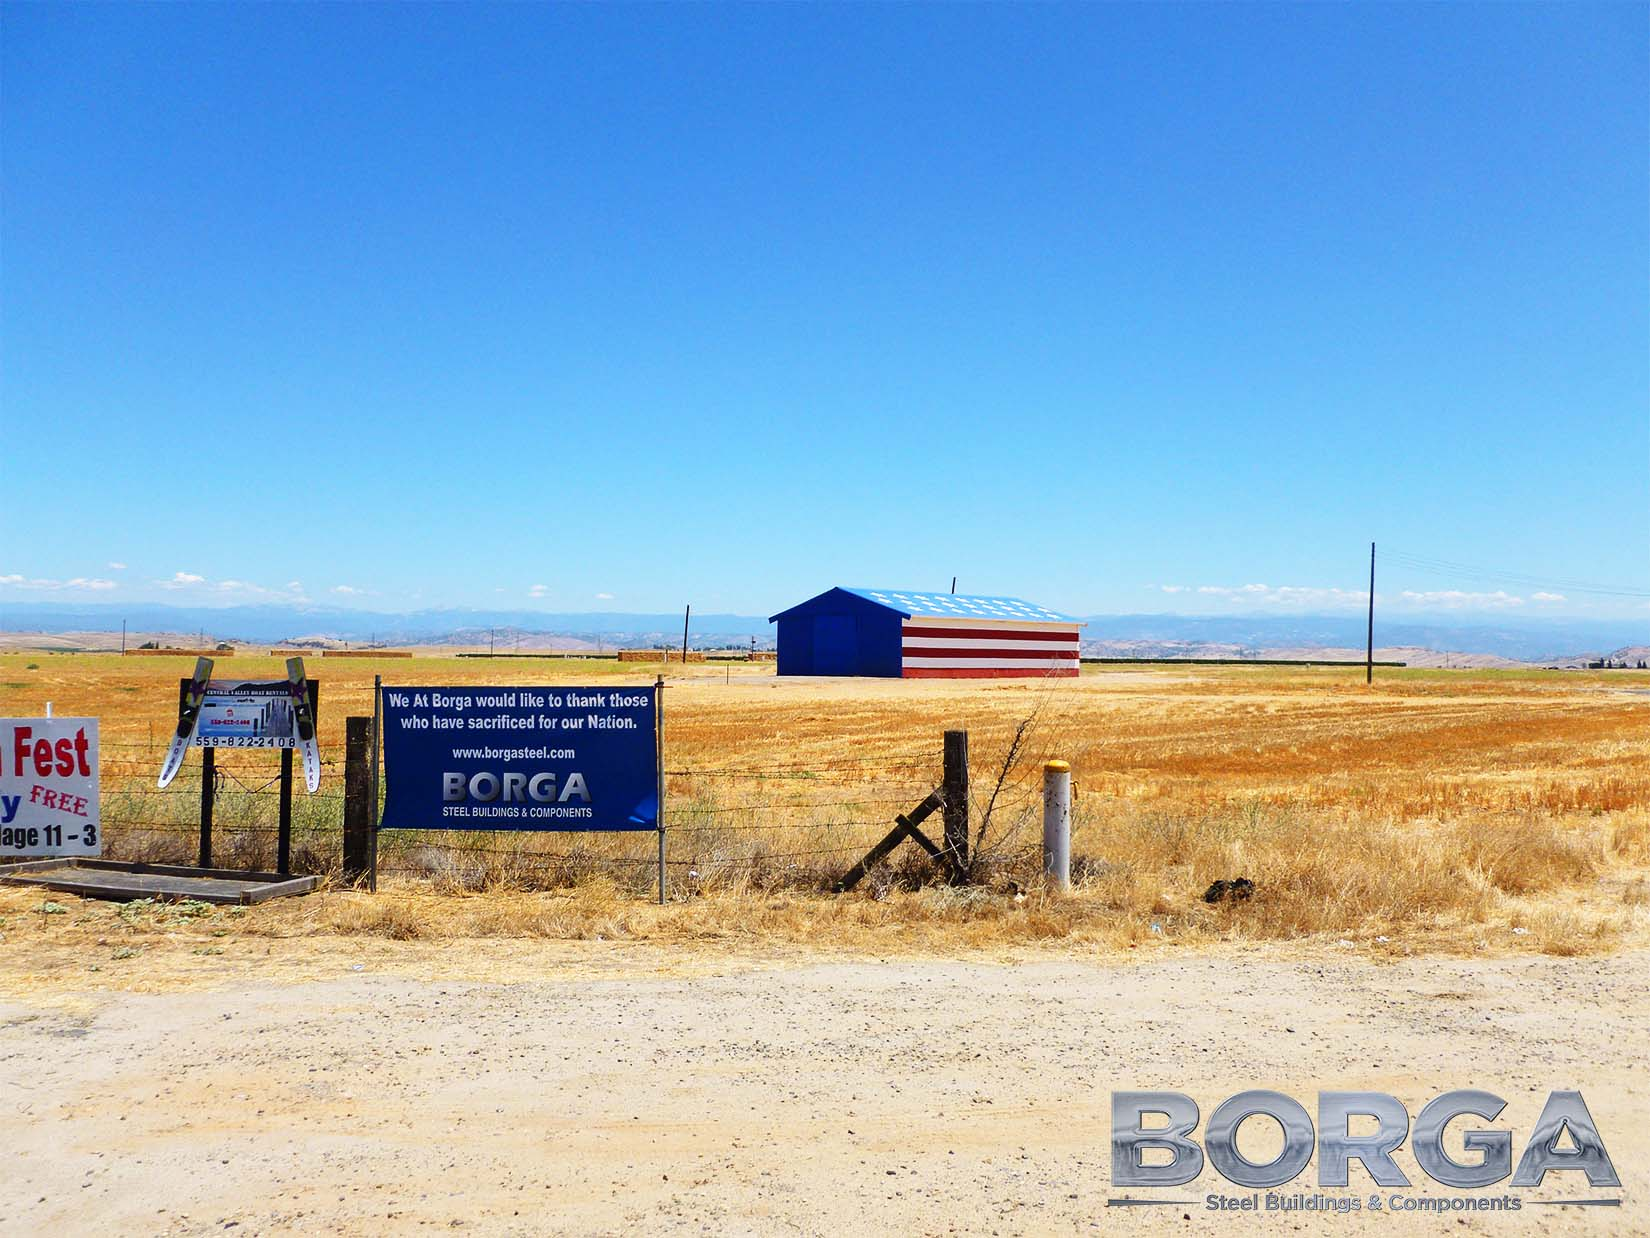 borga steel buildings components fresno california america usa flag stars and stripes red white blue